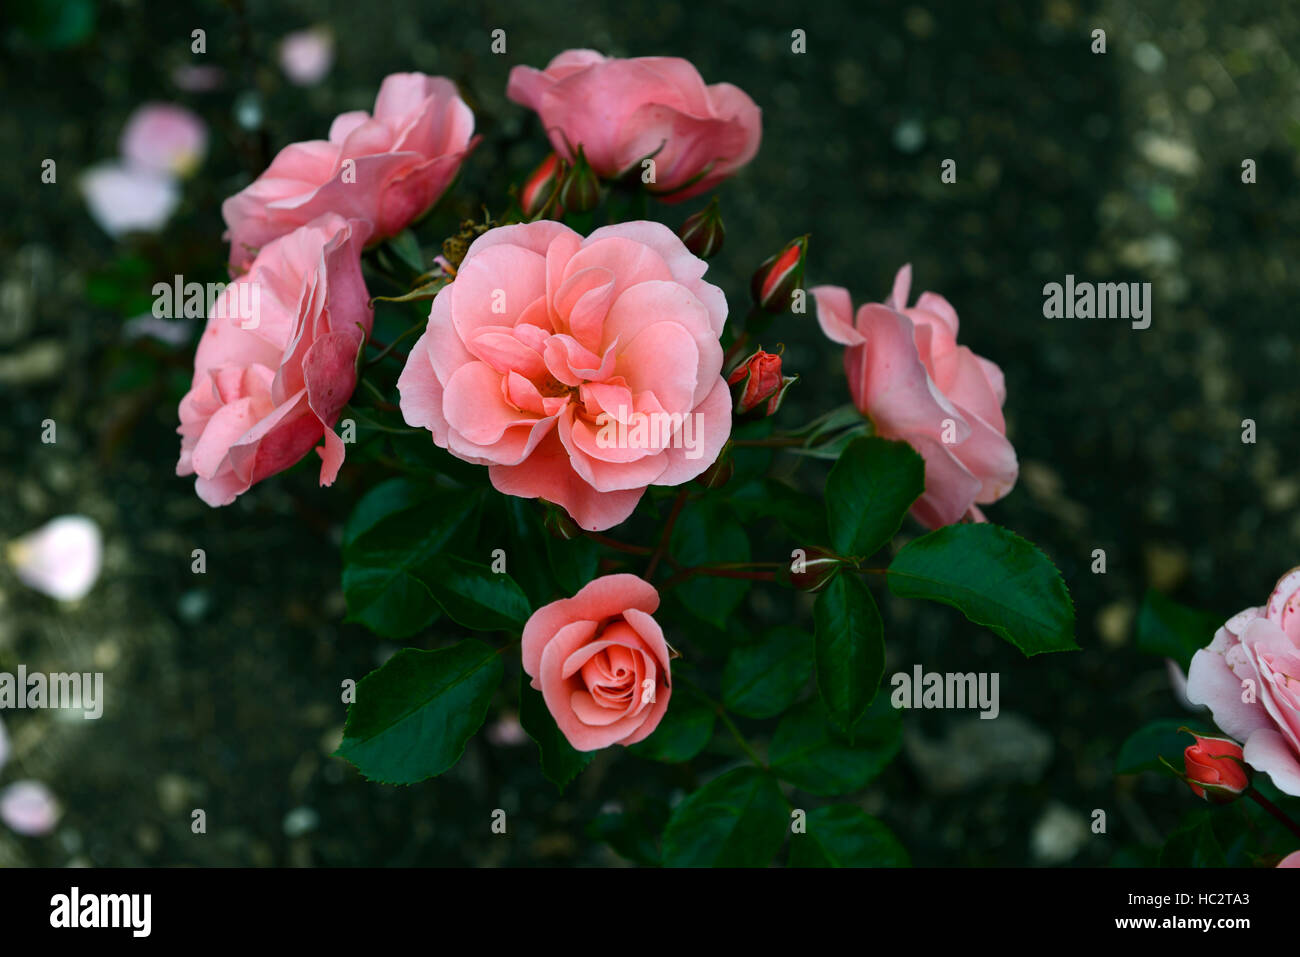 rosa fascination poulmax rose flower pink flowering flowers fragrant scented floribunda shrub shrubs RM Floral - Stock Image